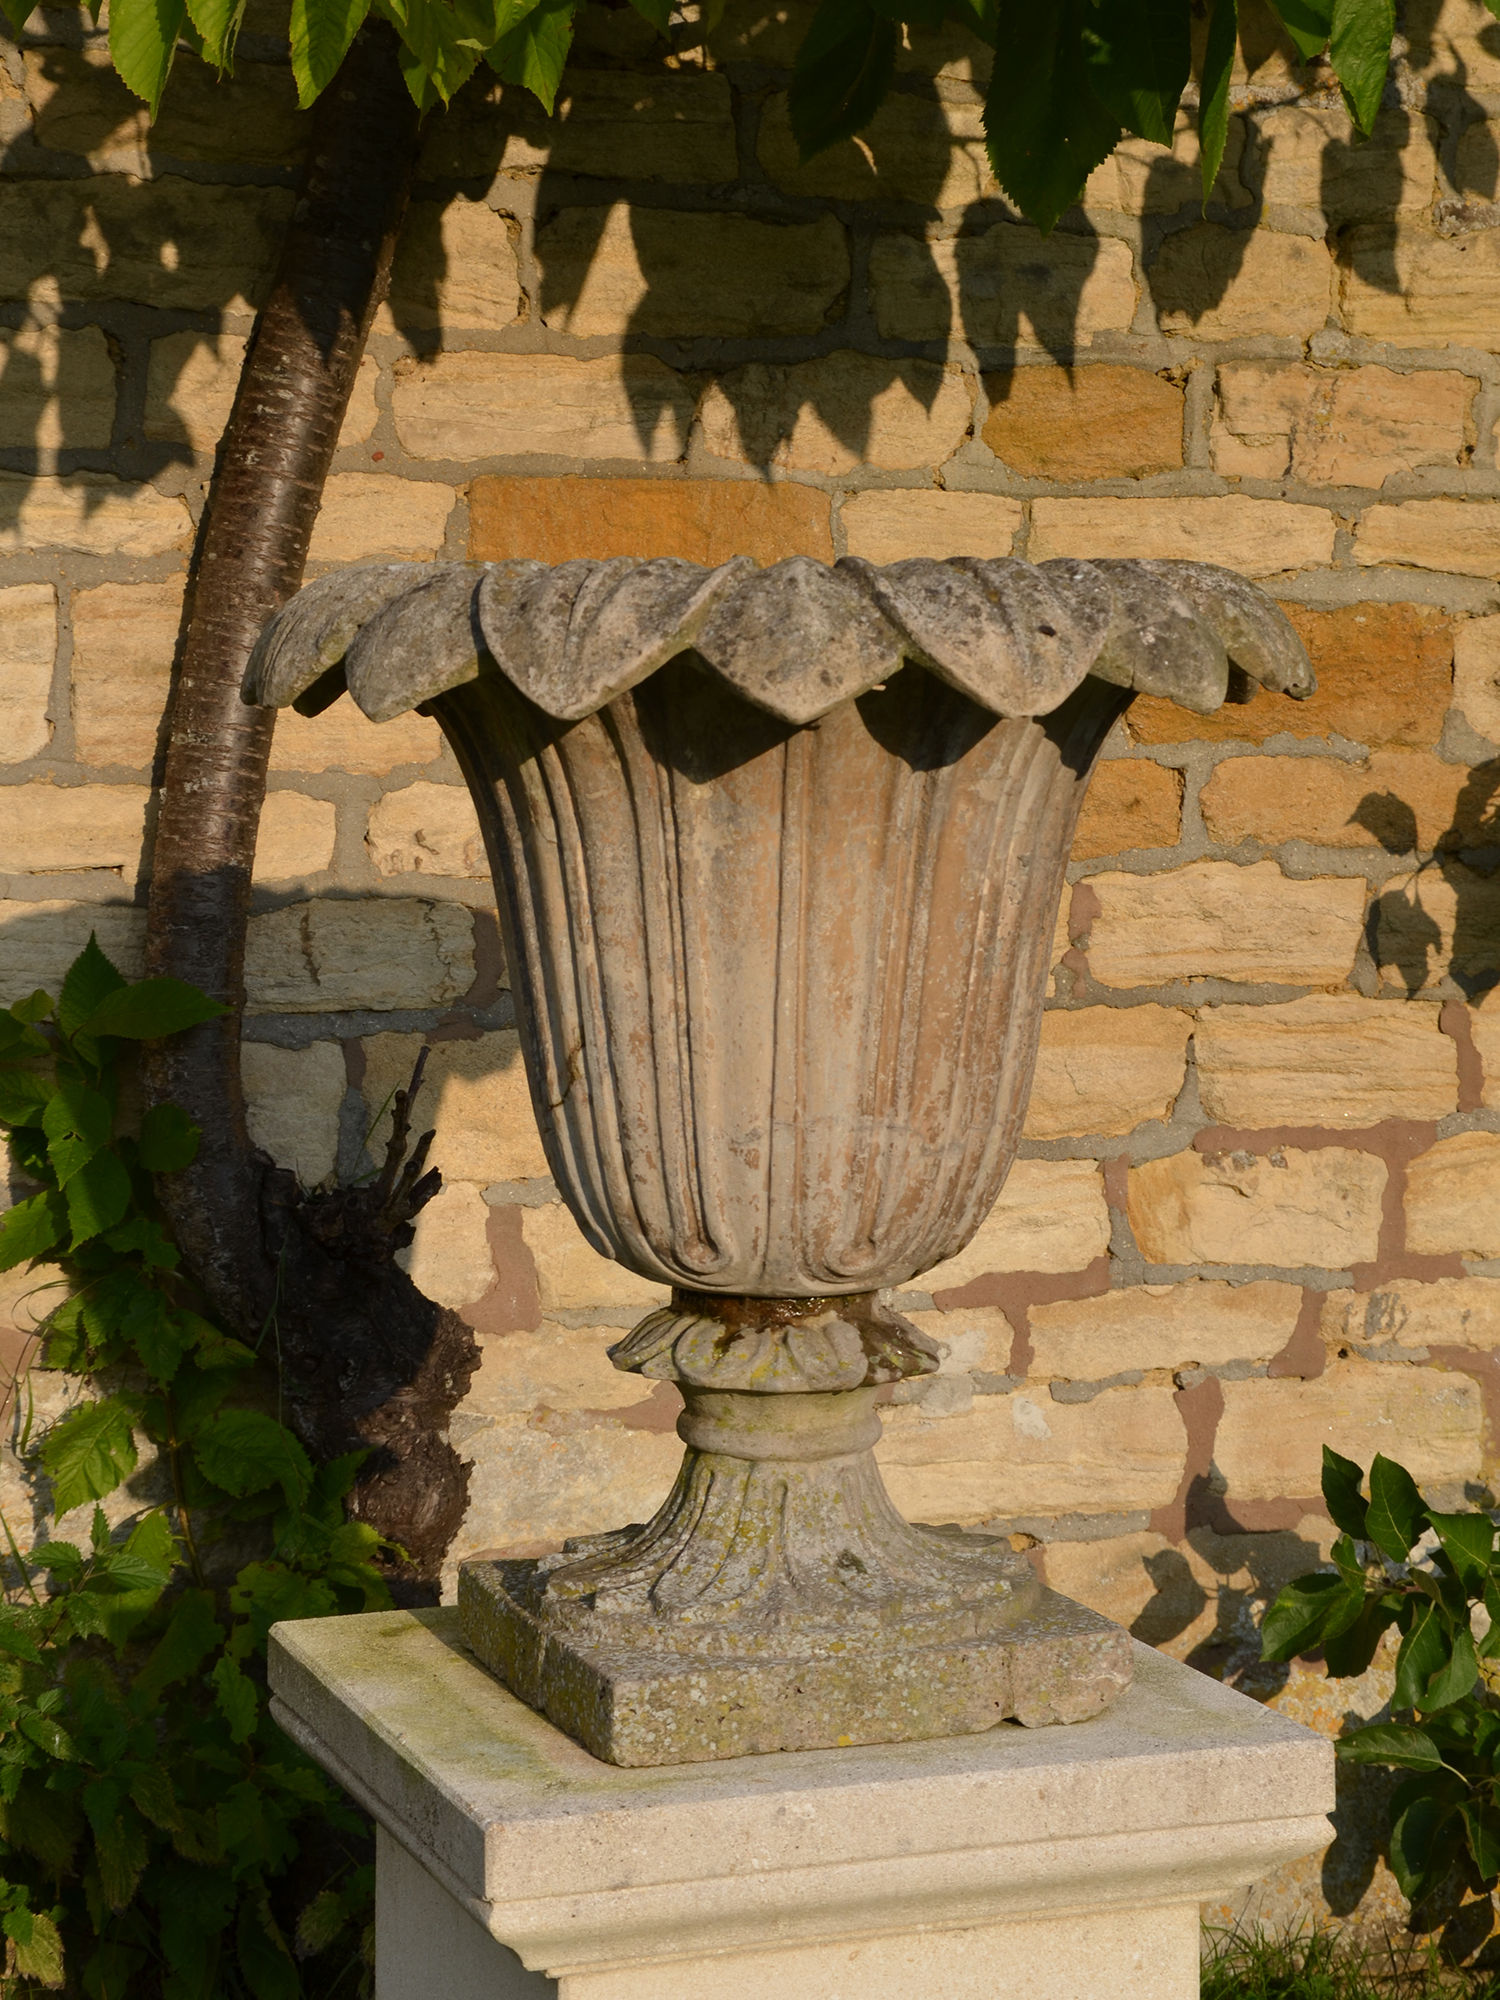 A pair of Austin and Seeley composition stone urns